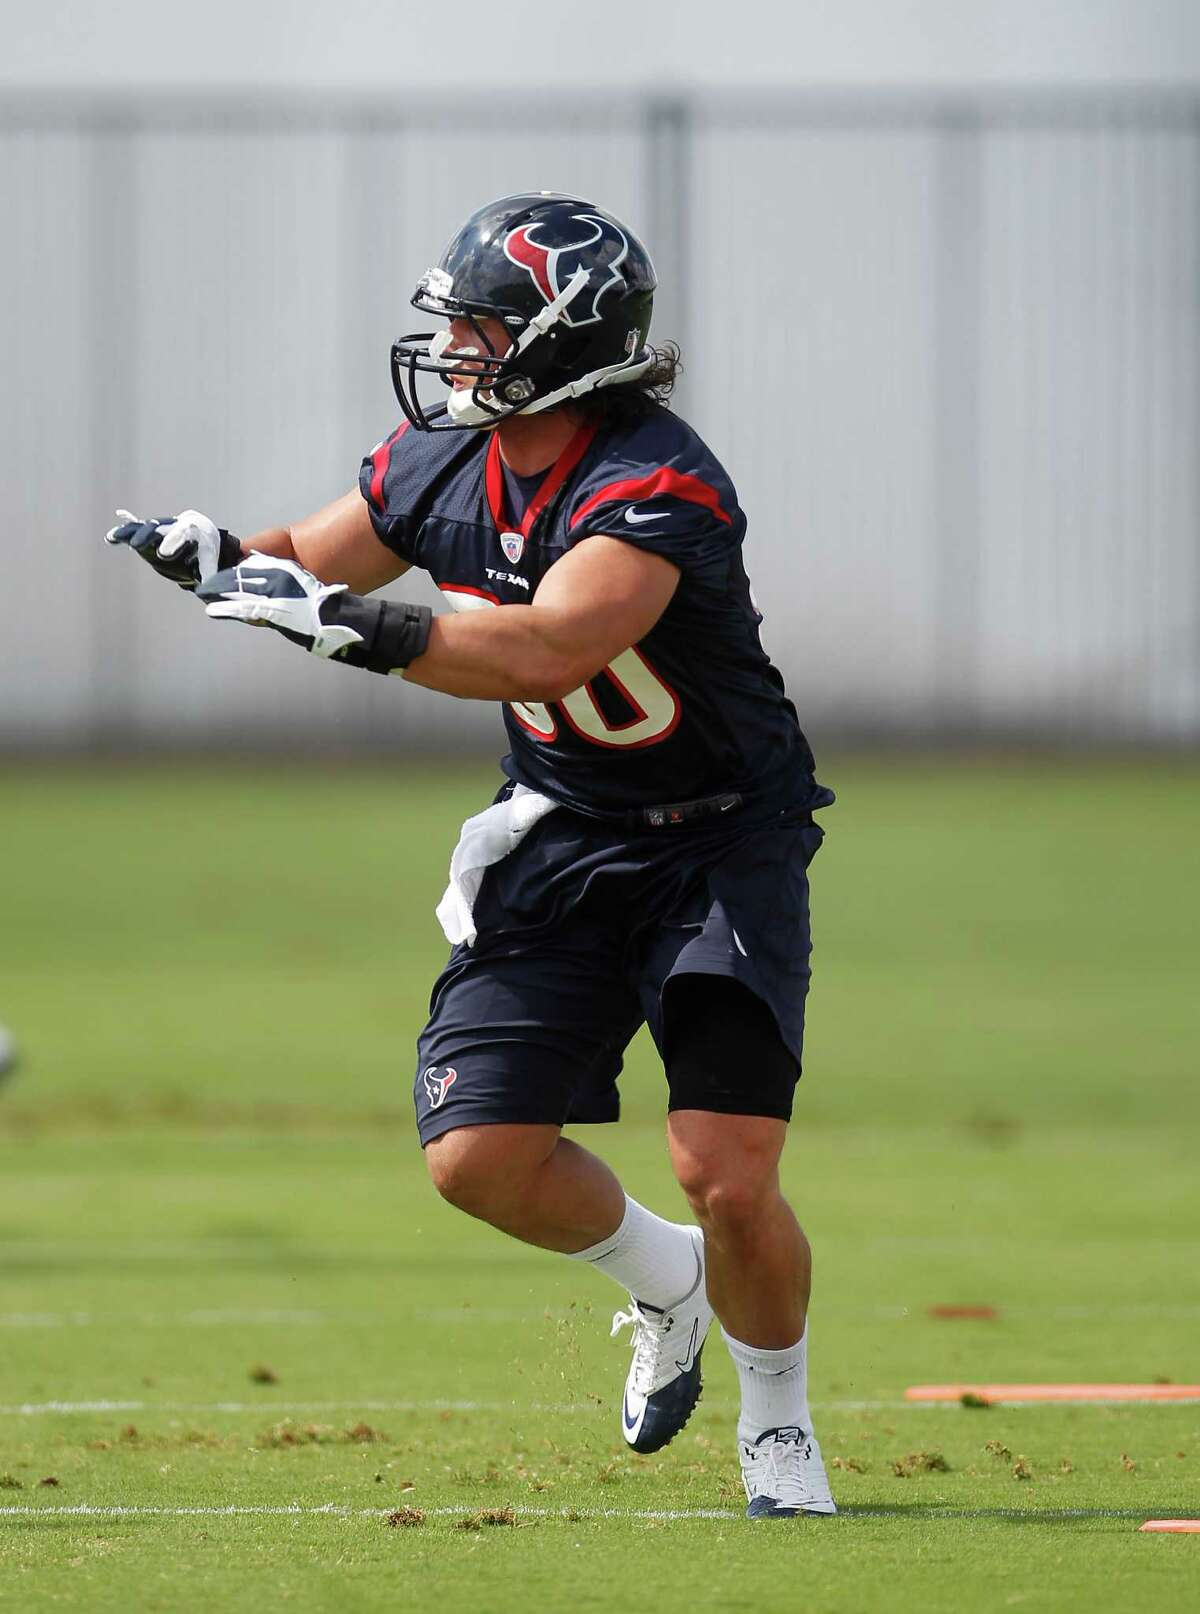 After contemplating life in prison, Texans rookie Shawn Loiseau doesn't find football all that tough.